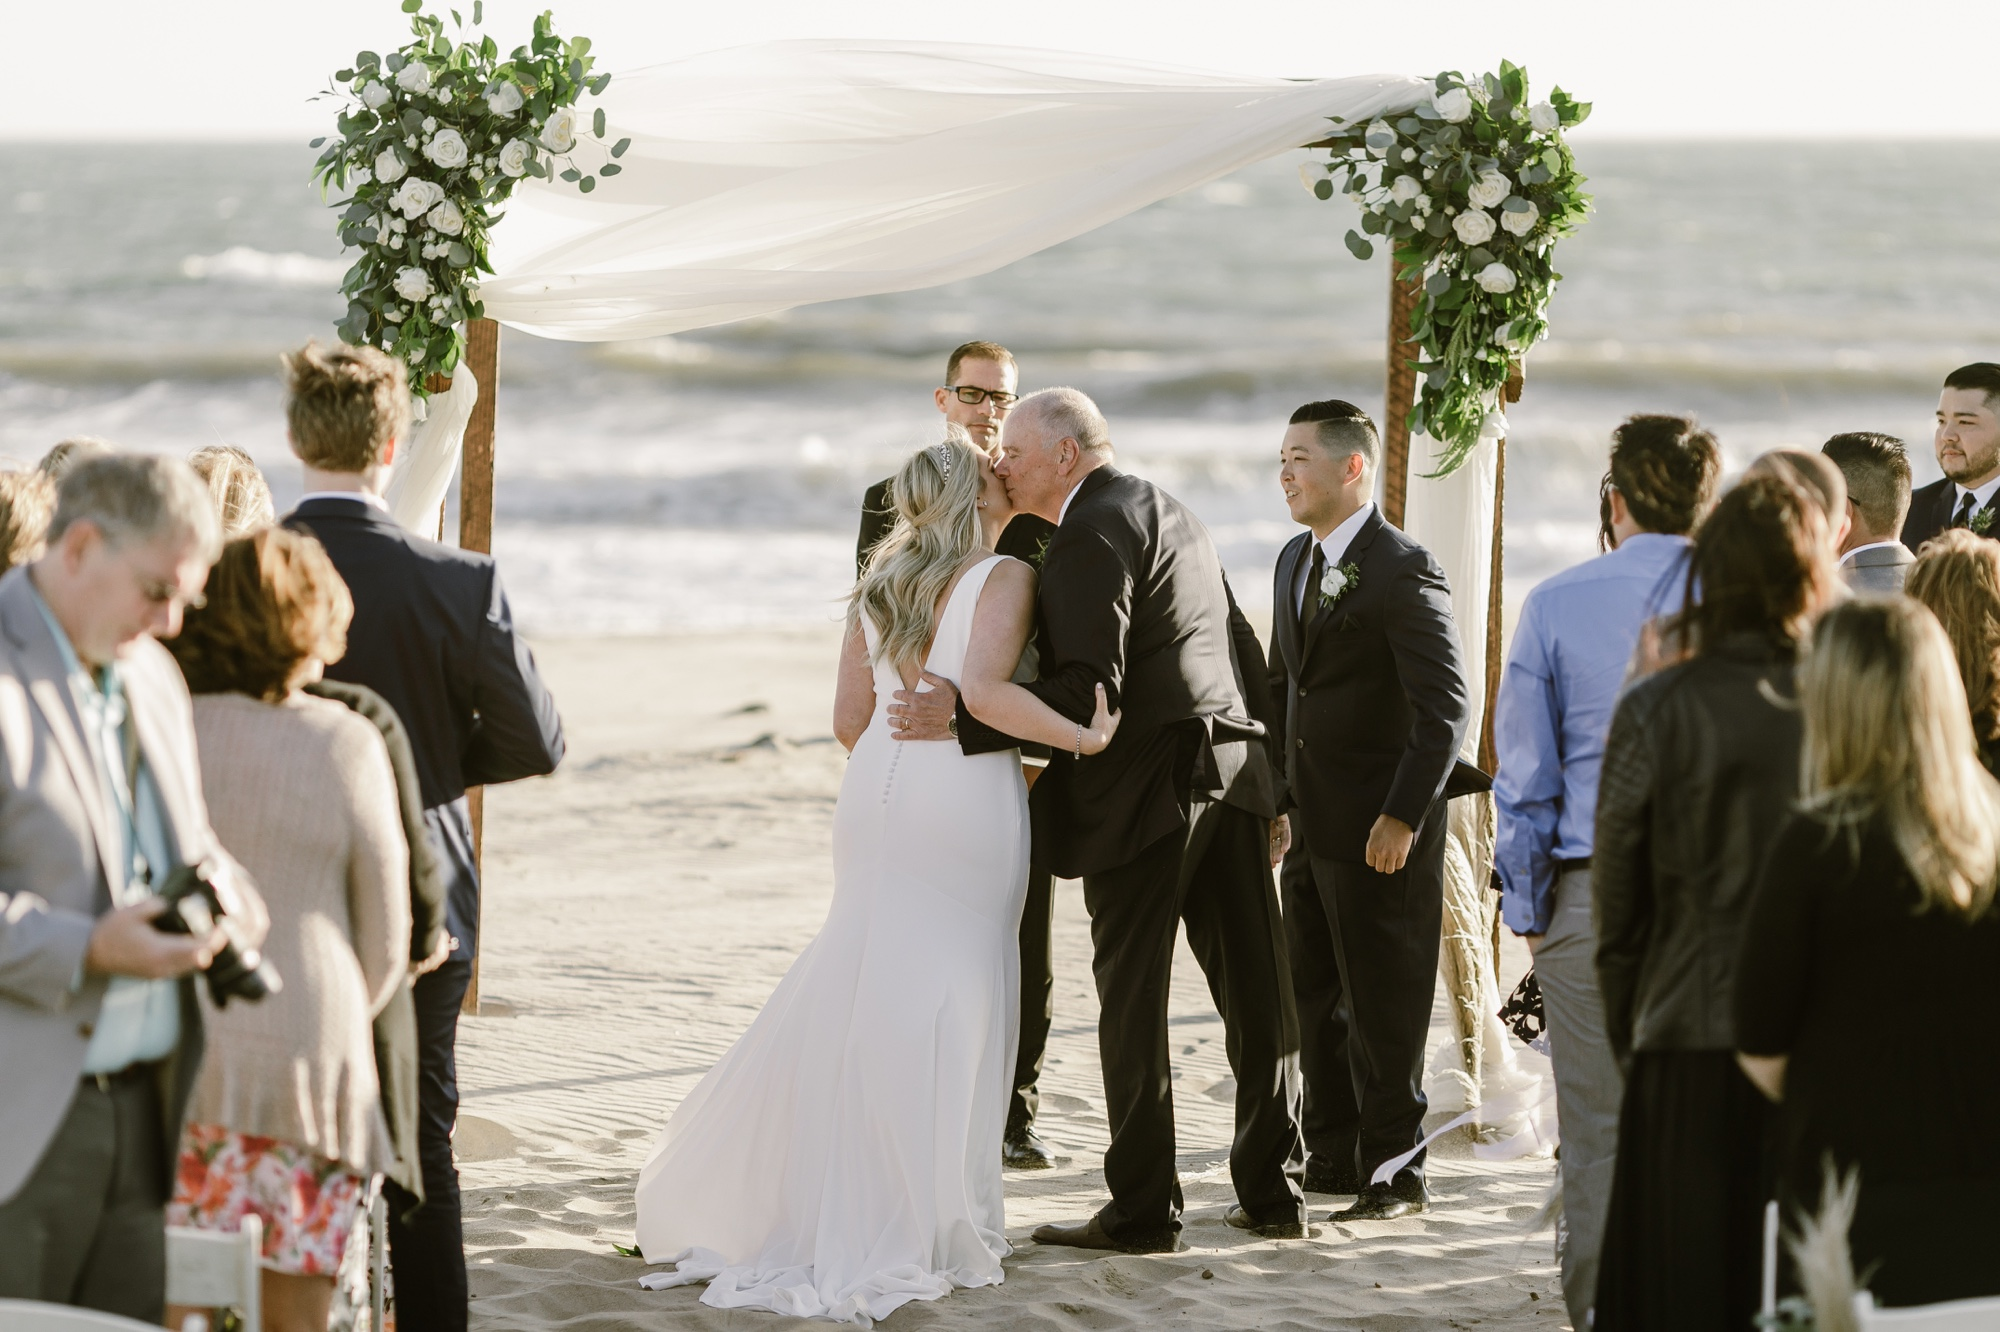 38_Ally and Tommy's Wedding-135_rincon_downtown_father_club_beach_daughter_walking_aisle.jpg